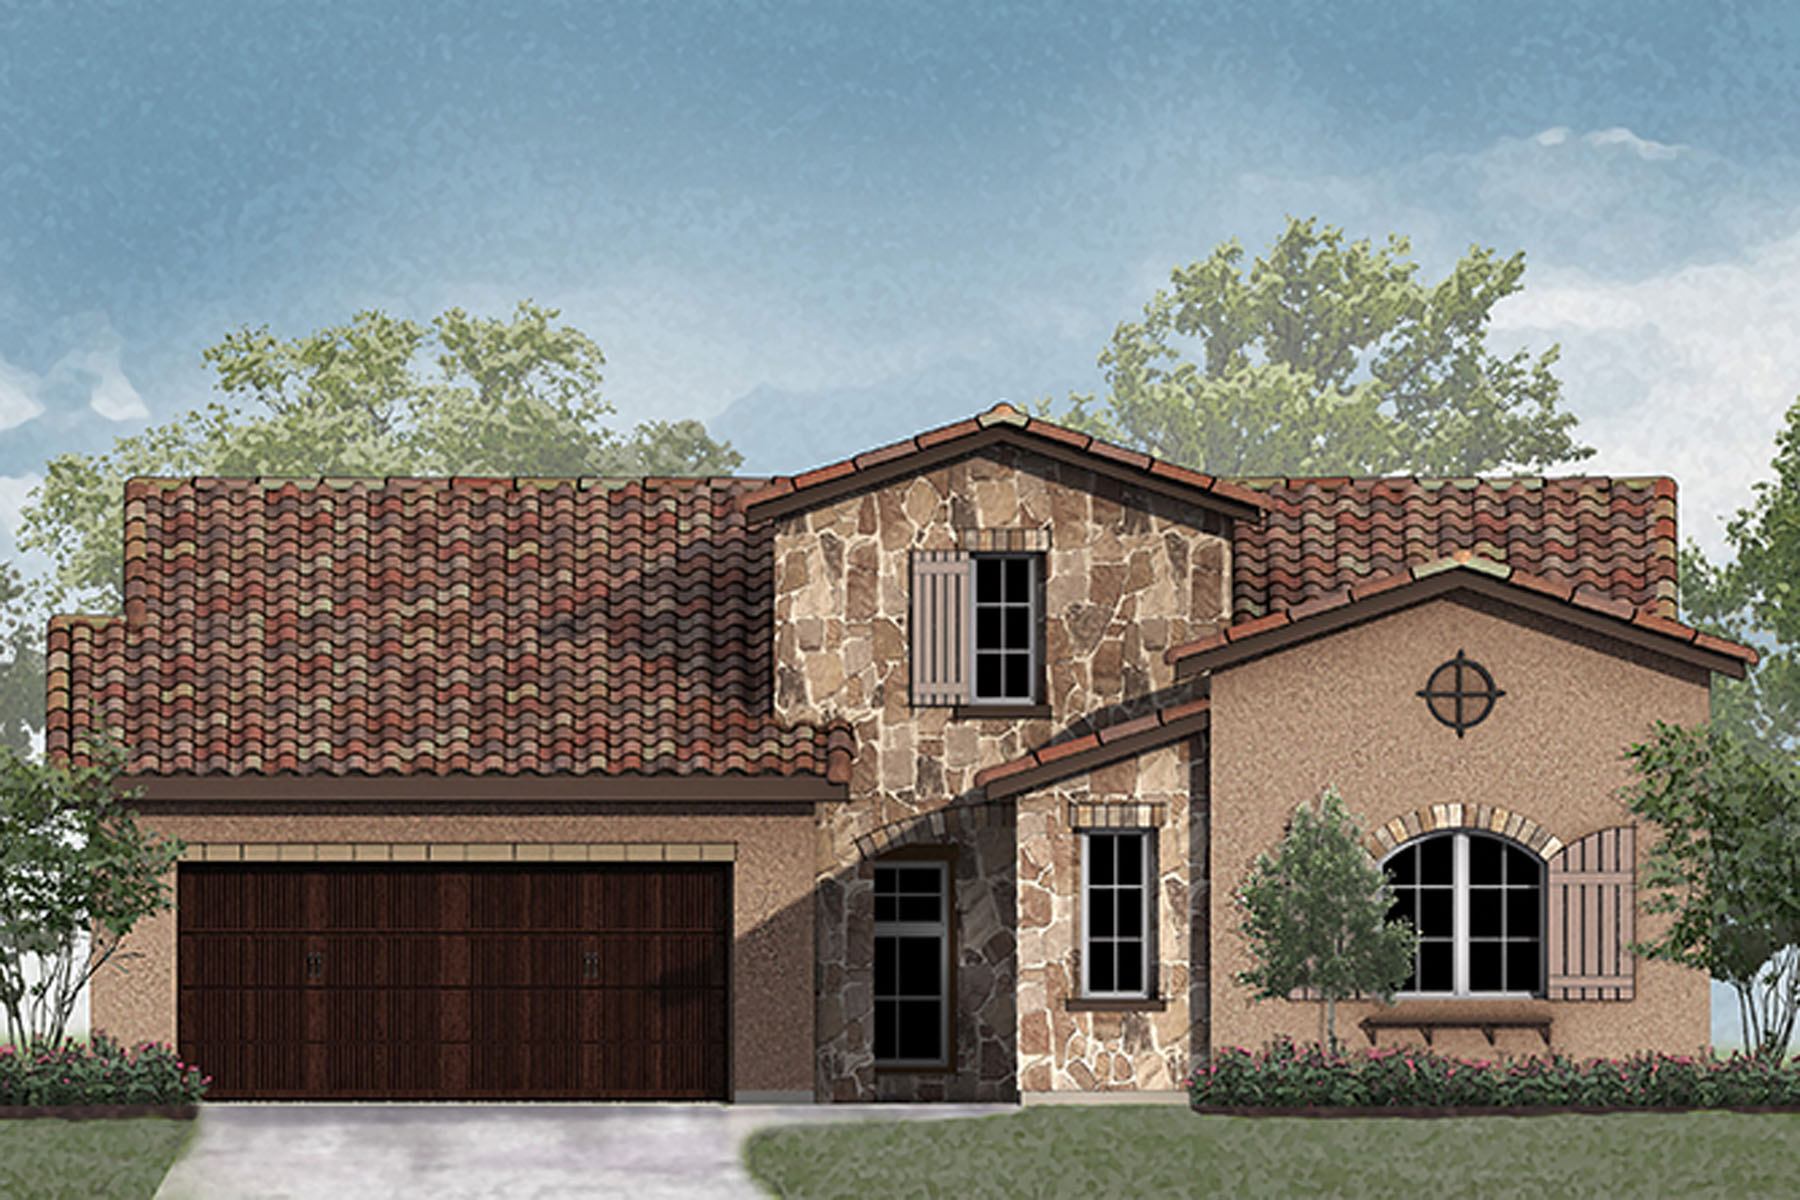 Single Family Home for Sale at Remington Homes Golf Villas at Ravenna 11118 Caretaker Rd Plan 920 Elevation A,B,C Littleton, Colorado, 80125 United States